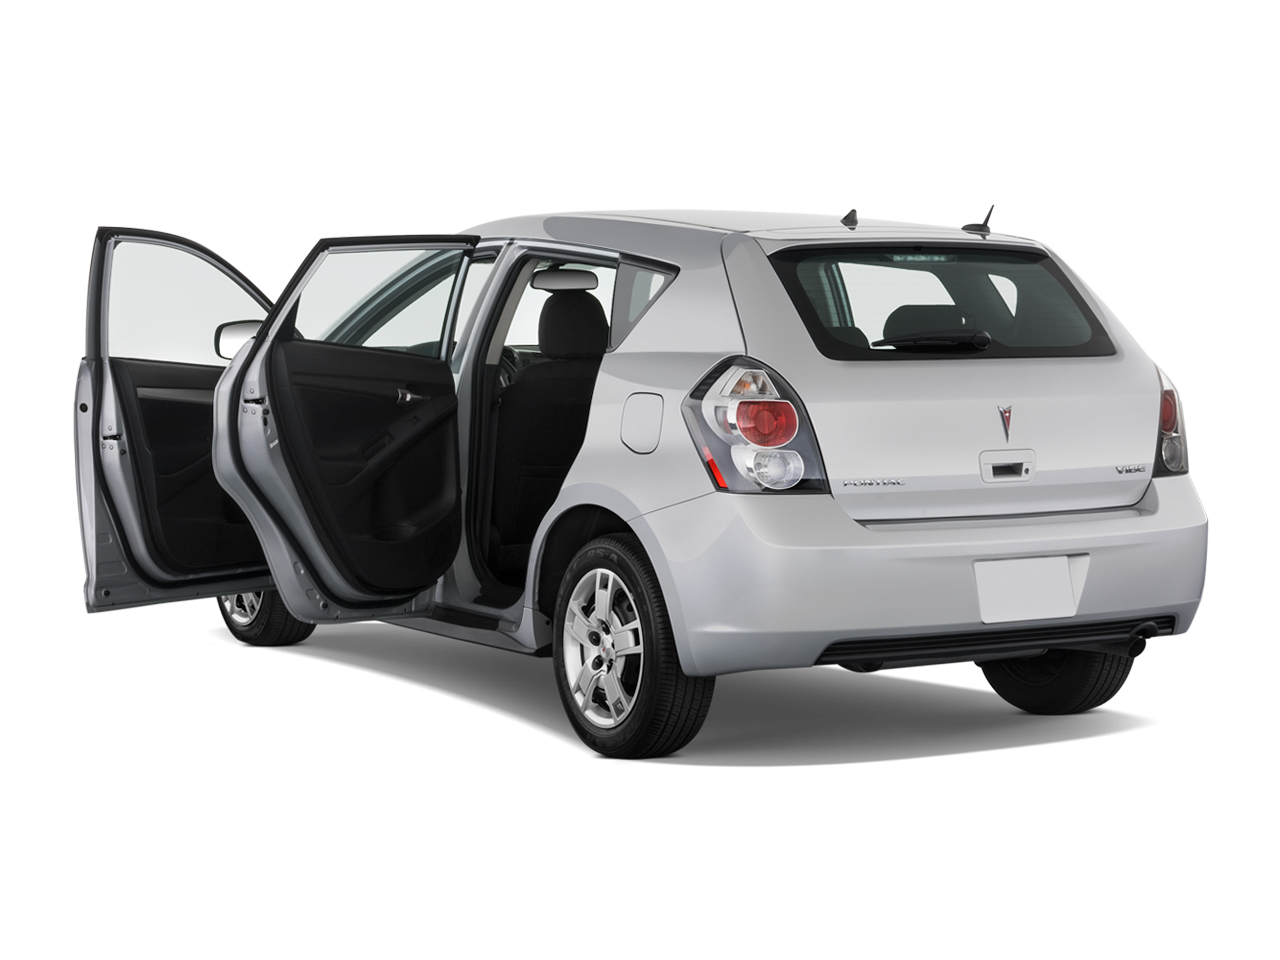 gm toyota The latest information and pricing on toyota cars, hybrids, crossovers, suvs, minivans, and pickup trucks - available at toyota dealerships in canada visit now.